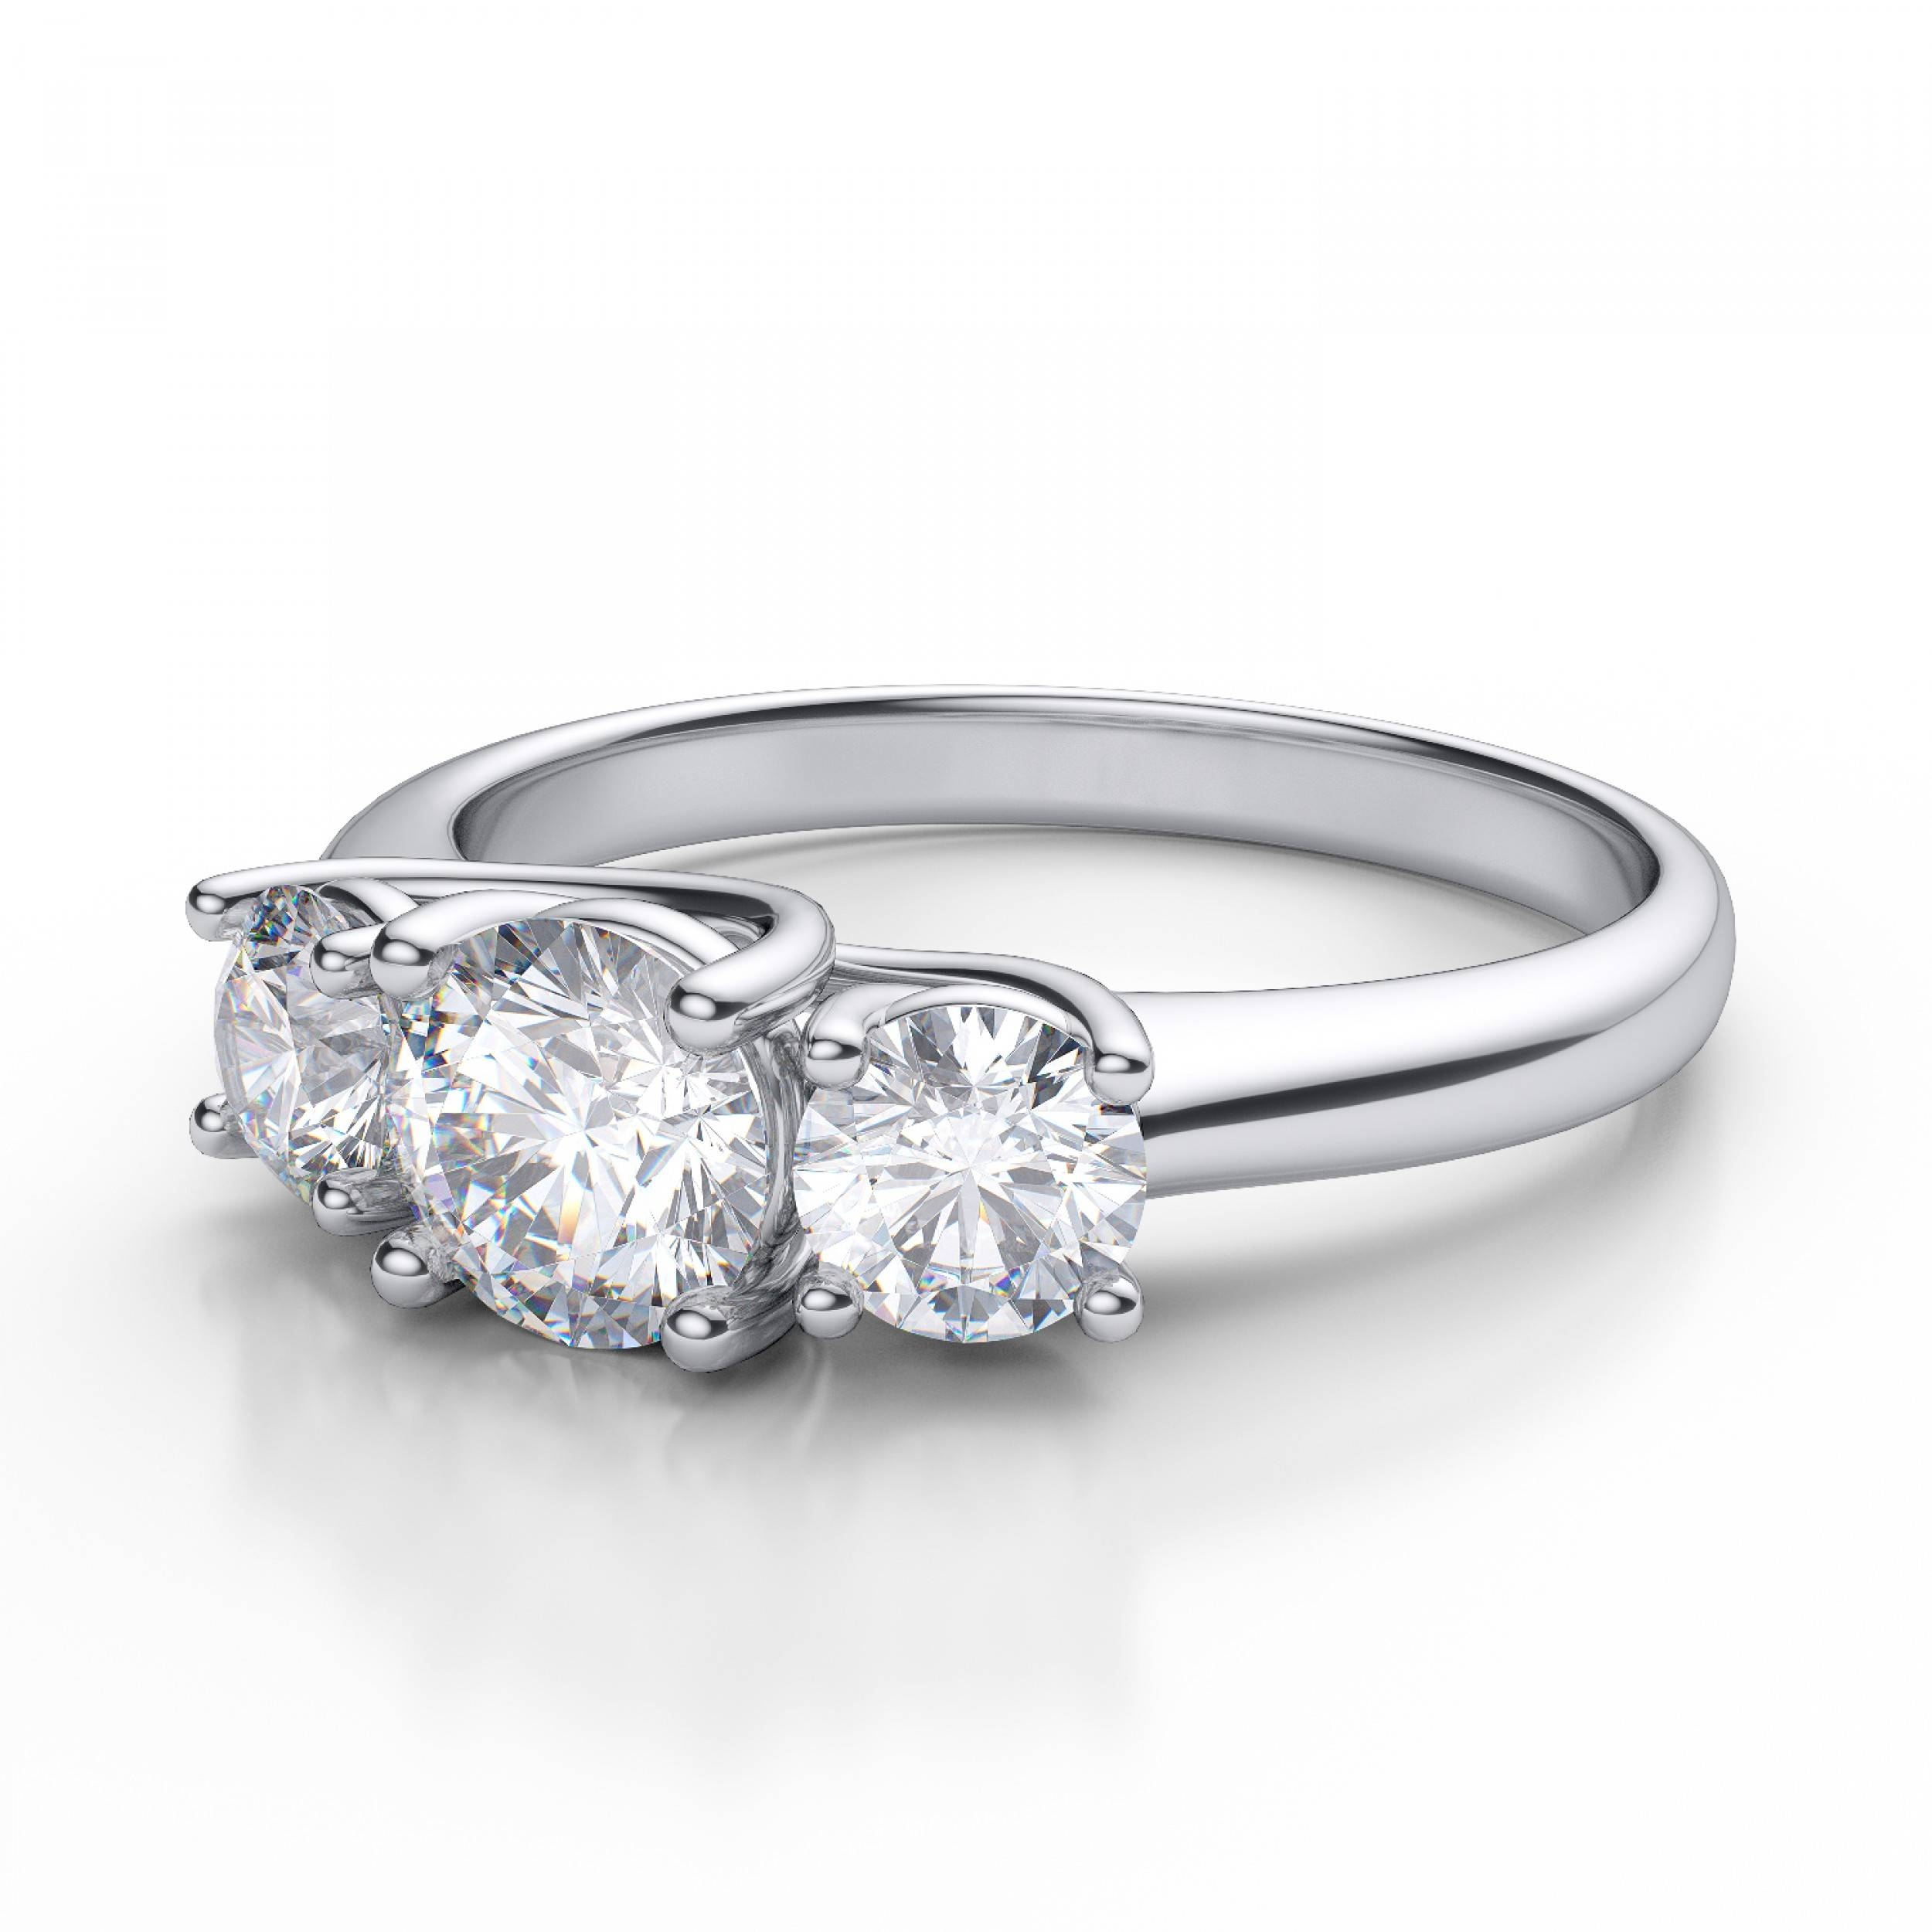 Three Stone Platinum Diamond Rings | Wedding, Promise, Diamond Within 3 Stone Platinum Engagement Rings (View 4 of 15)